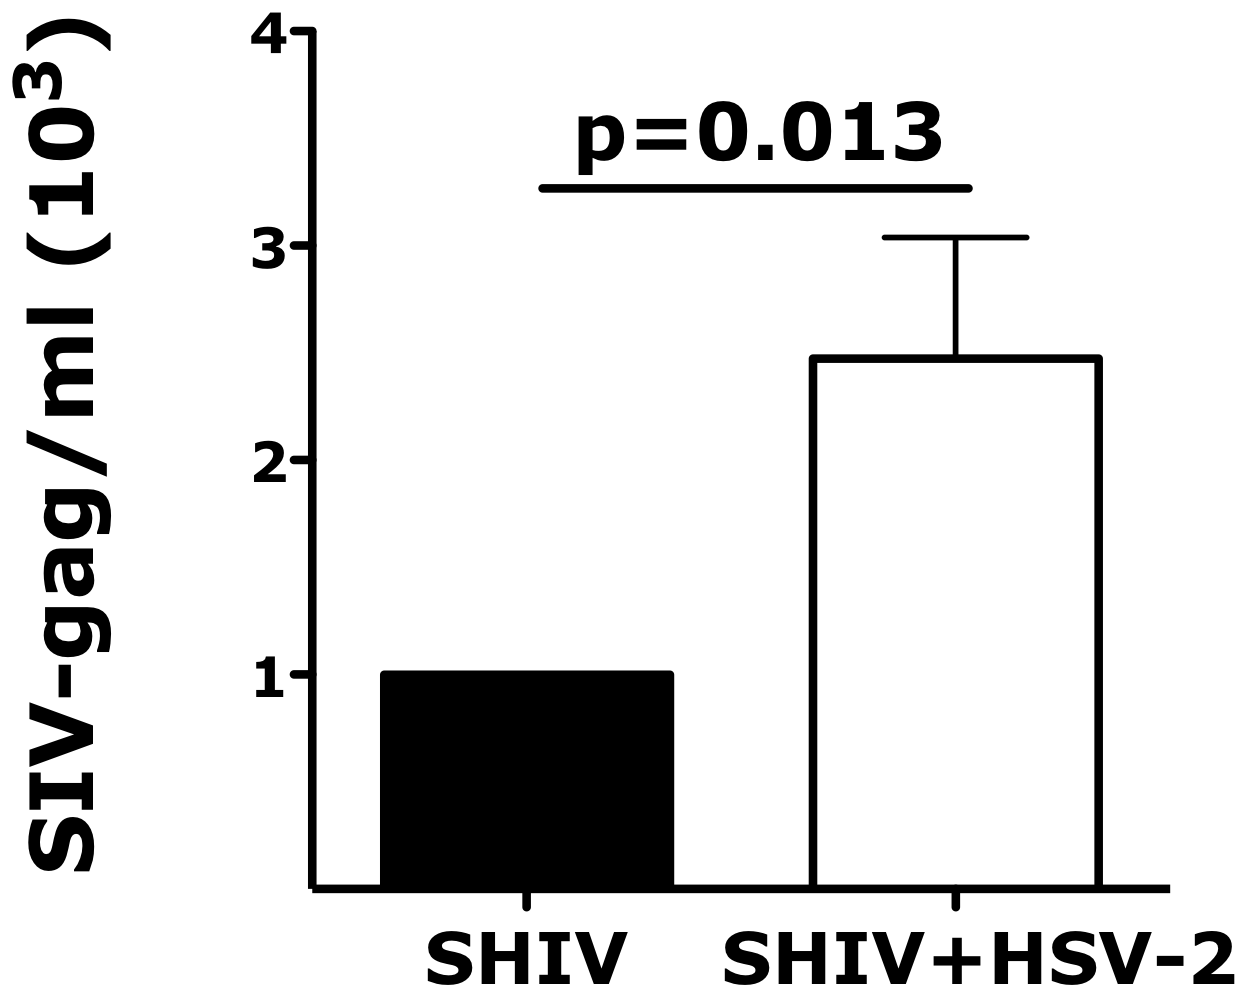 Vaginal tissues infected ex vivo with HSV-2 are more susceptible to SHIV infection.